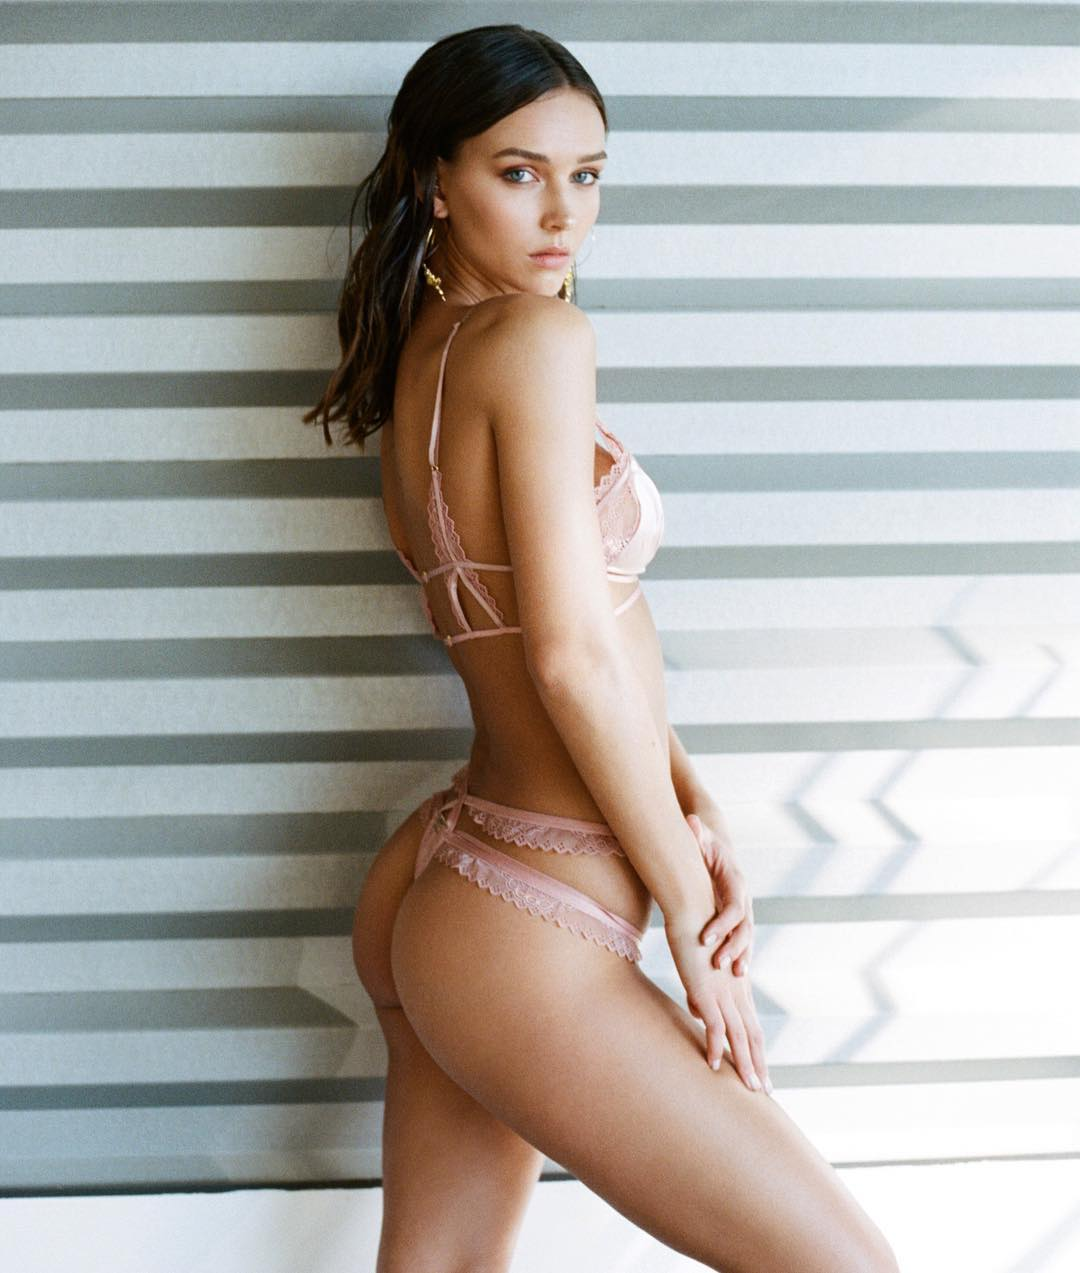 Ass Anna Wendzikowska nude (69 foto and video), Topless, Fappening, Feet, cleavage 2020